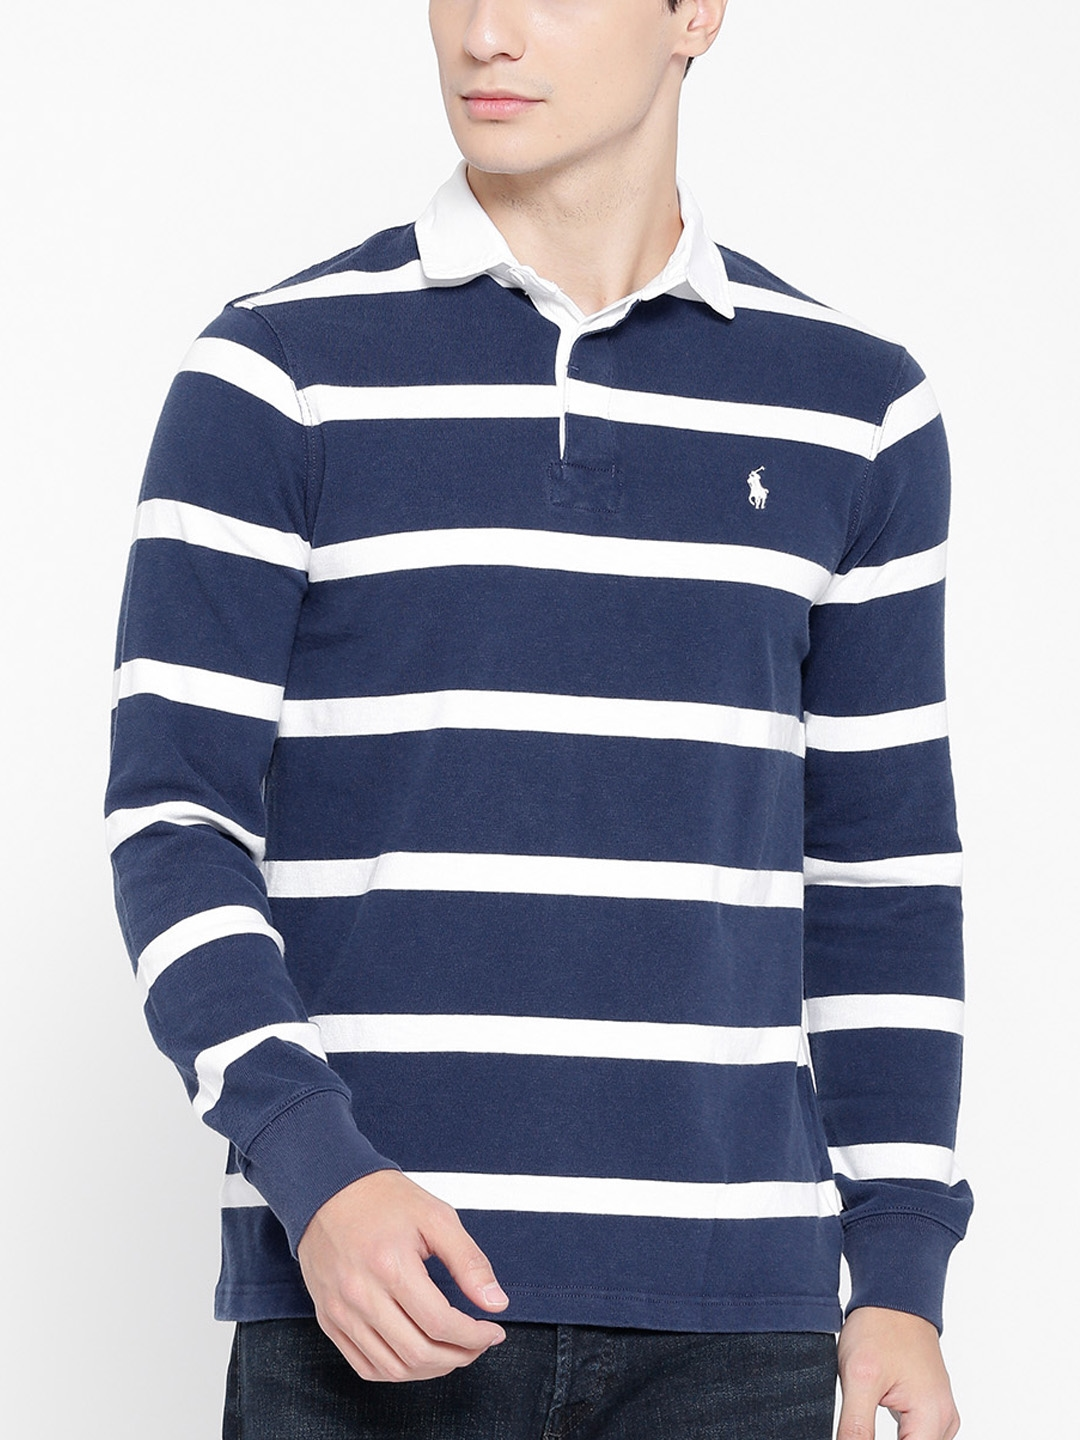 2b362867 Buy Polo Ralph Lauren The Iconic Rugby Shirt - Tshirts for Men ...